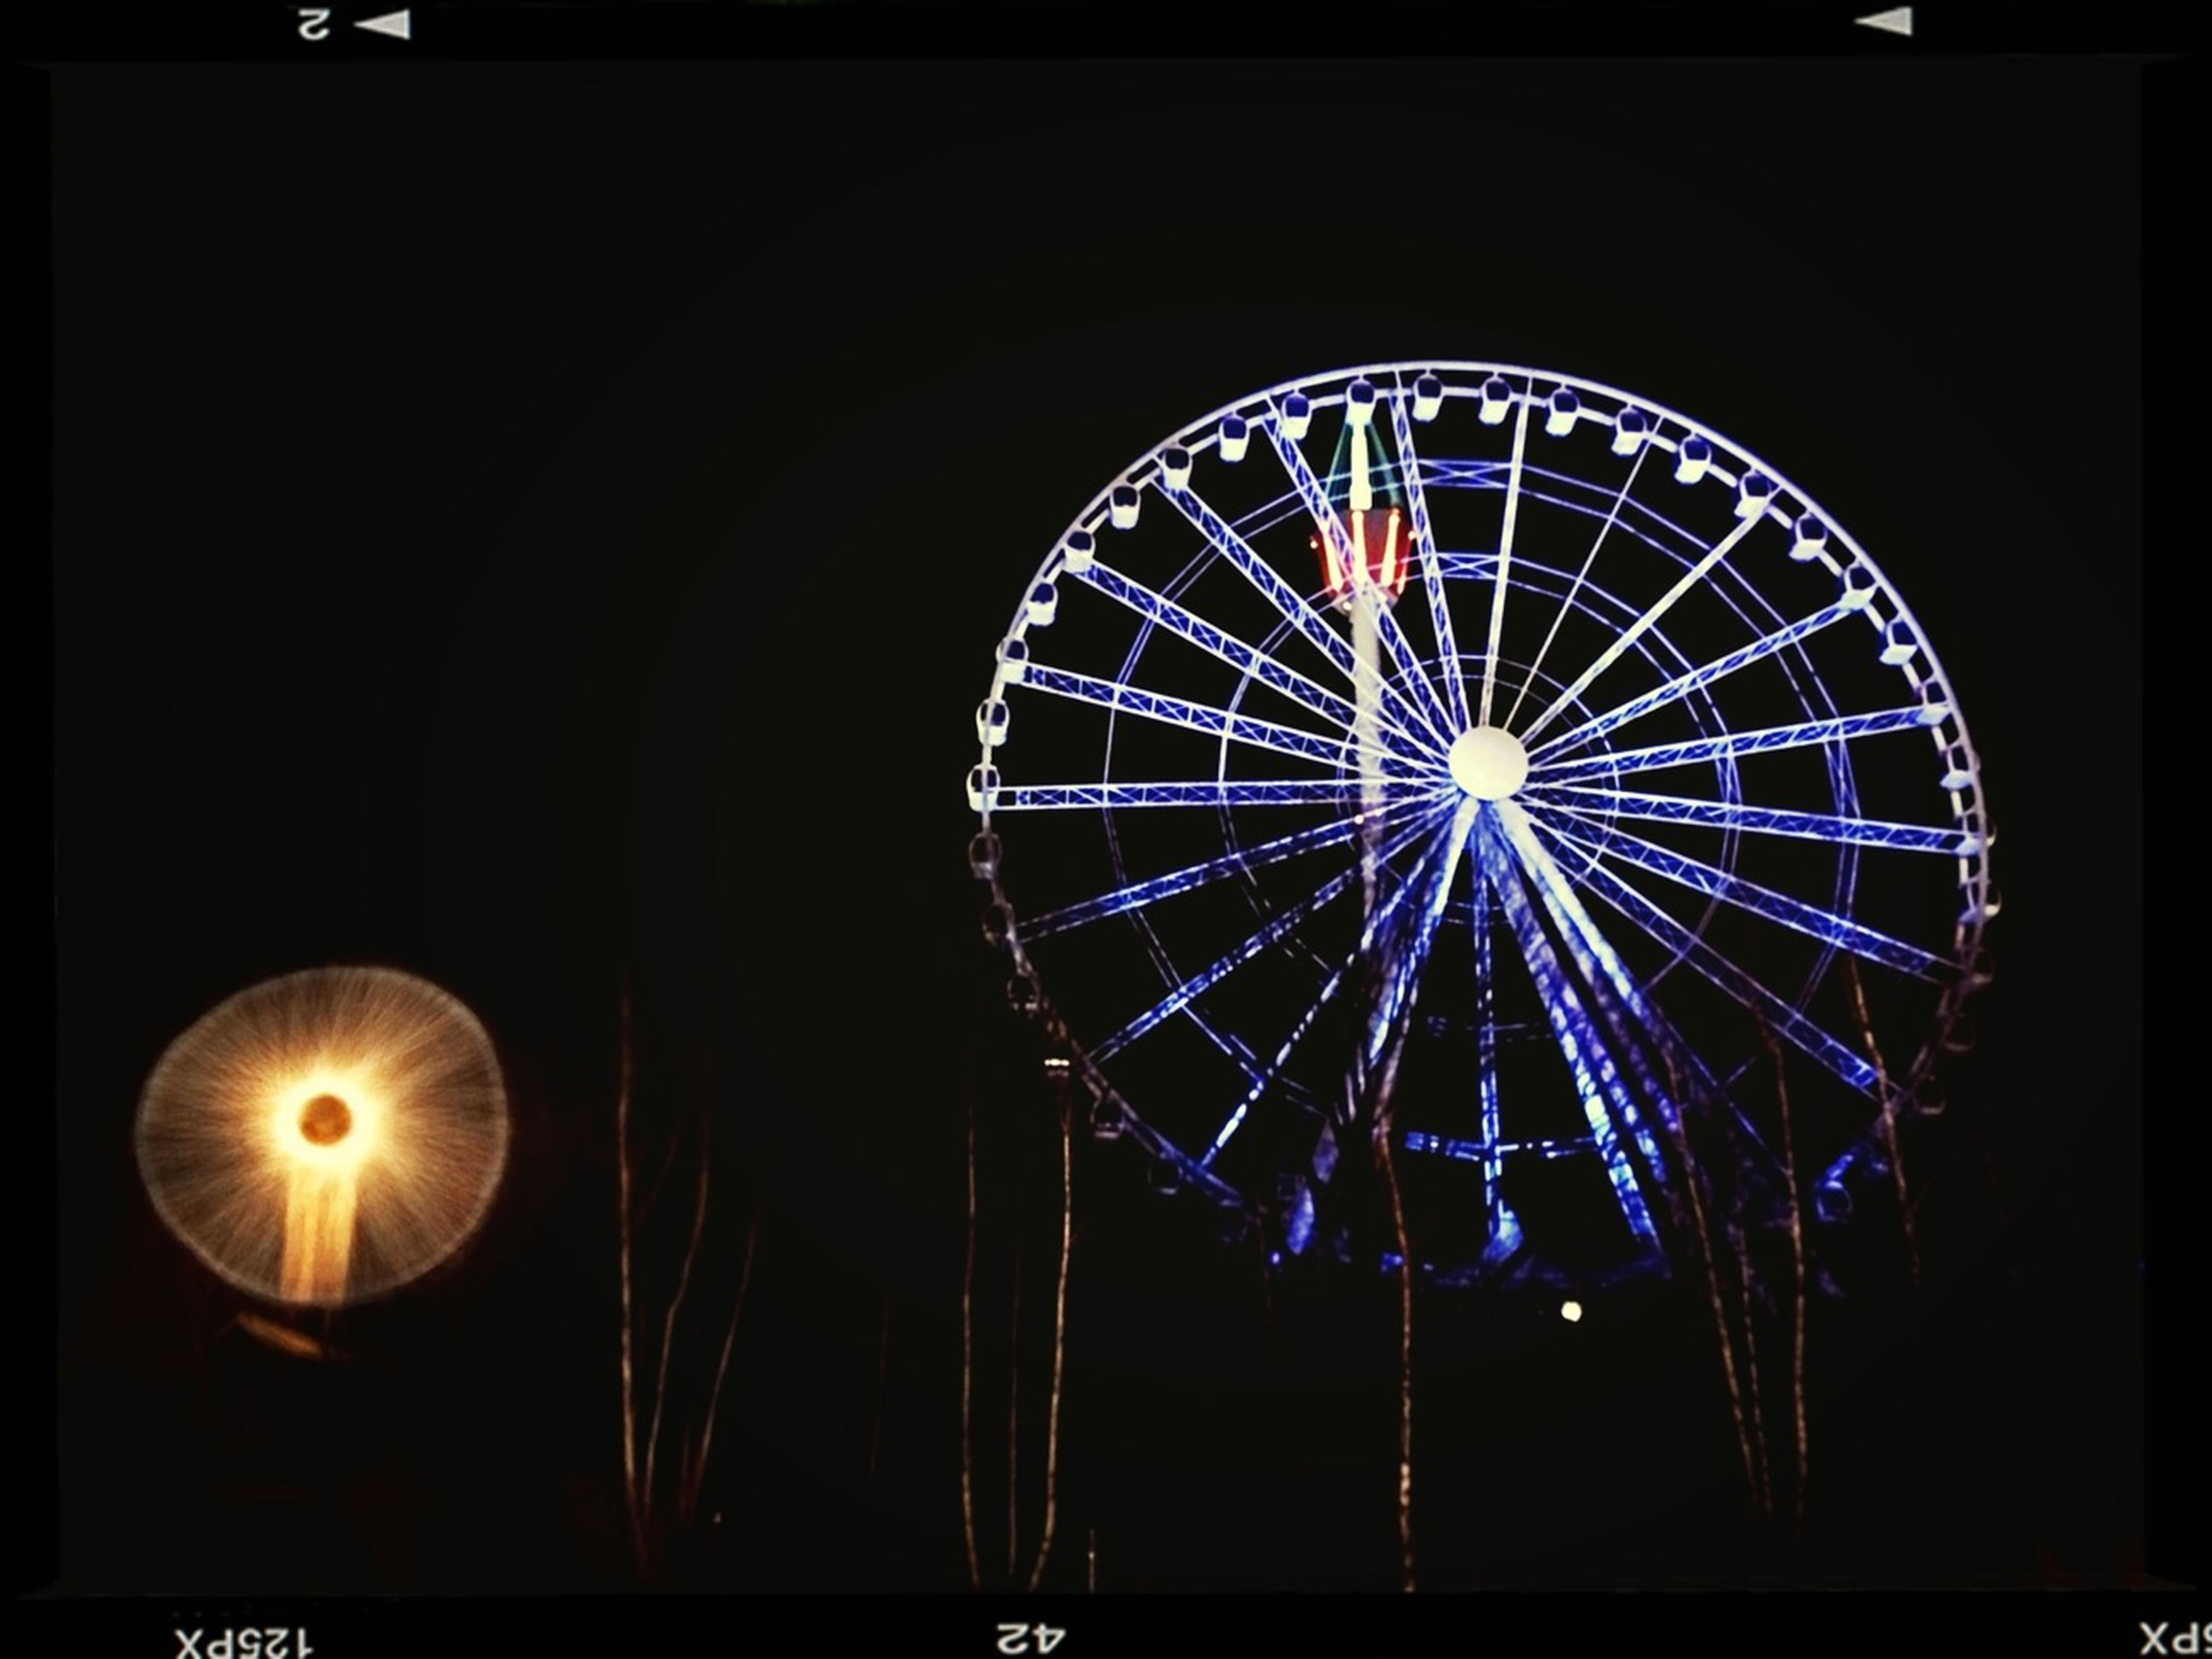 low angle view, illuminated, night, circle, arts culture and entertainment, ferris wheel, amusement park ride, amusement park, glowing, lighting equipment, sky, transfer print, no people, built structure, geometric shape, decoration, outdoors, auto post production filter, clear sky, architecture